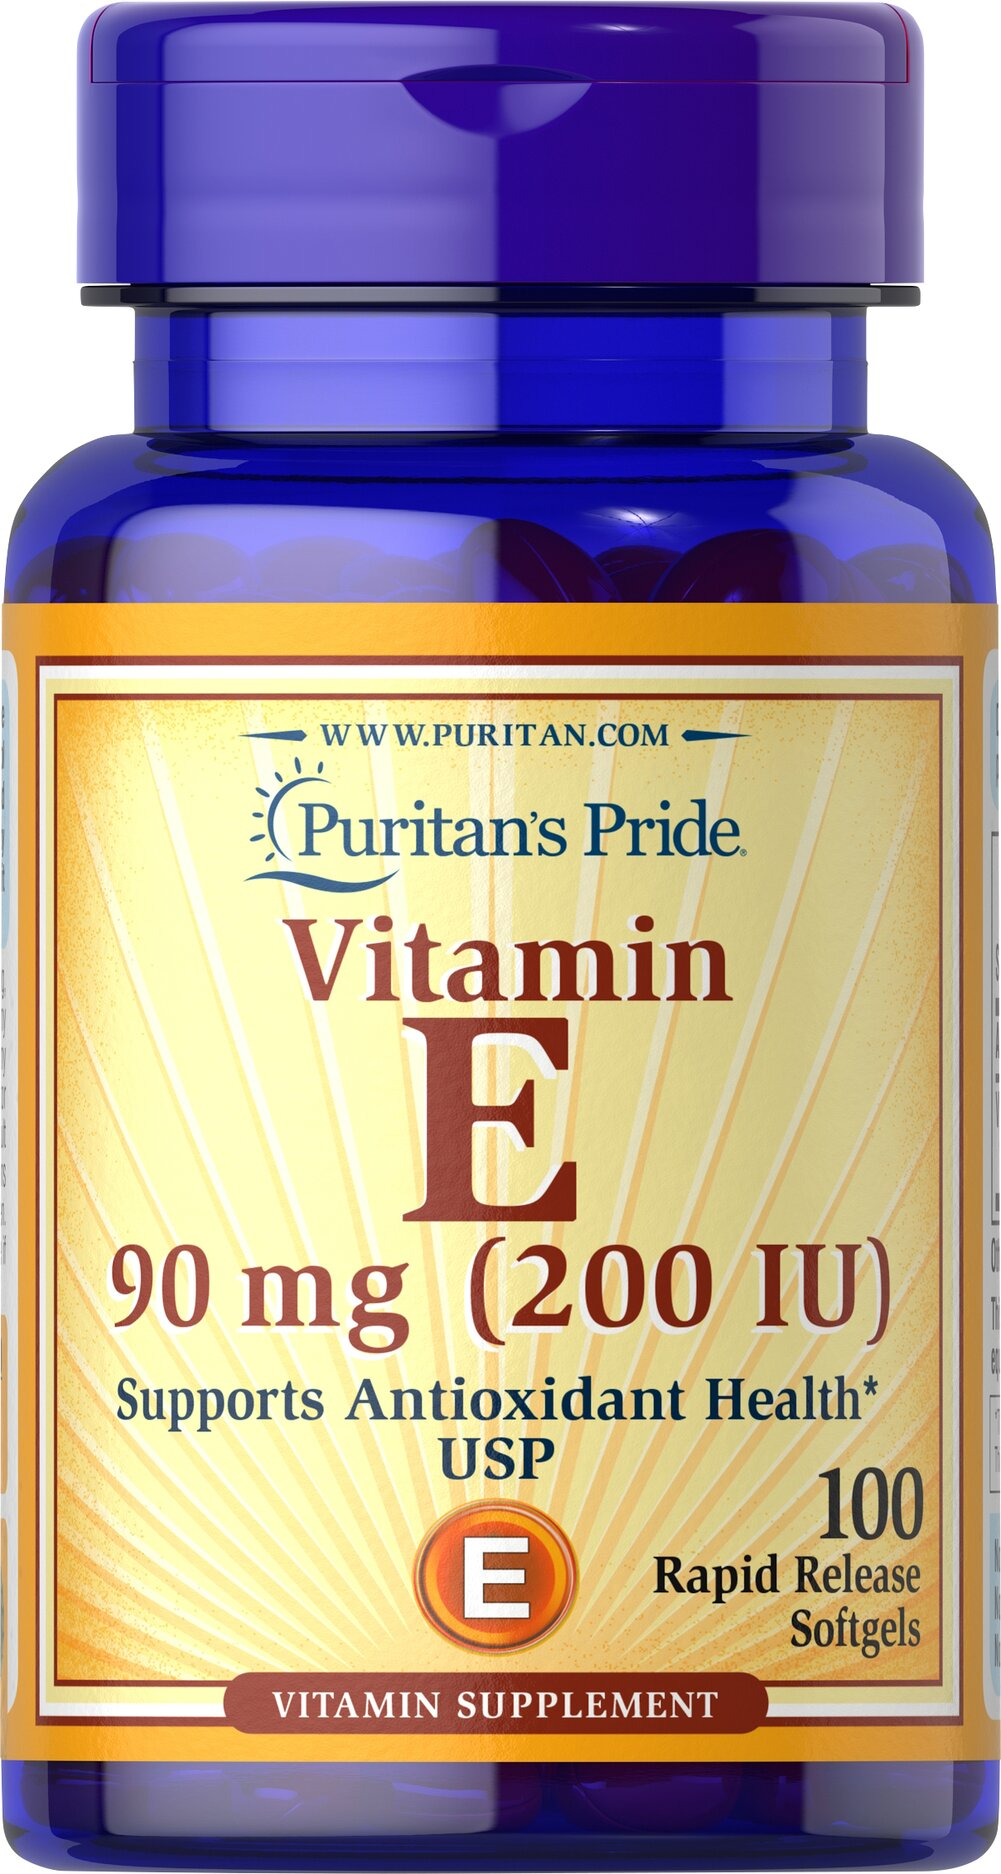 Vitamin E-200 IU <p>Features dl-Alpha Vitamin E, a synthetic form of Vitamin E</p> <p>Promotes heart and circulatory health**</p> <p>Contributes to healthy skin and immune function**</p> <p>Rapid release liquid softgels are easy to swallow</p> <p>One a day formula</p> 100 Softgels 200 IU $9.99